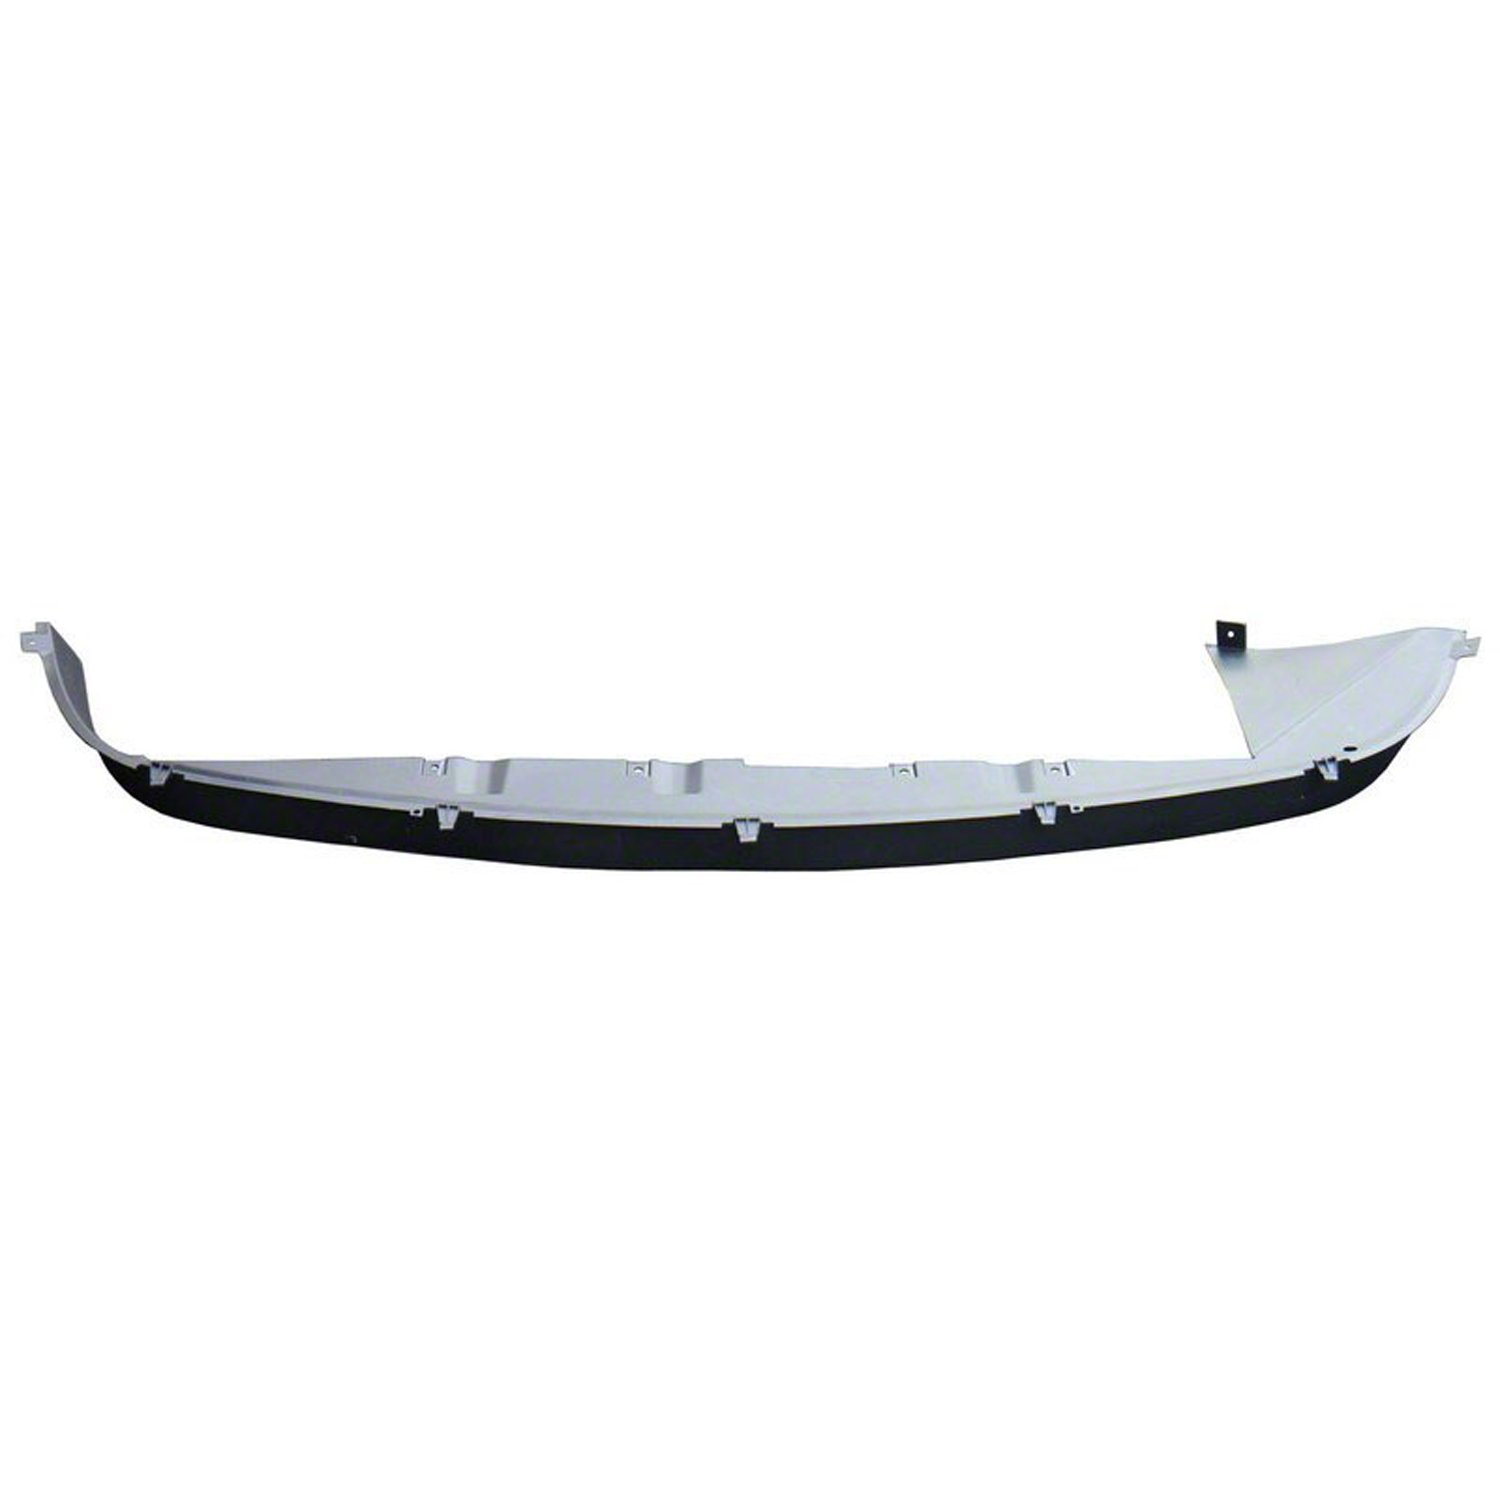 Crash Parts Plus Crash Parts Plus Bumper Air Dam for 08-14 Dodge Caravan, Chrysler Town & Country